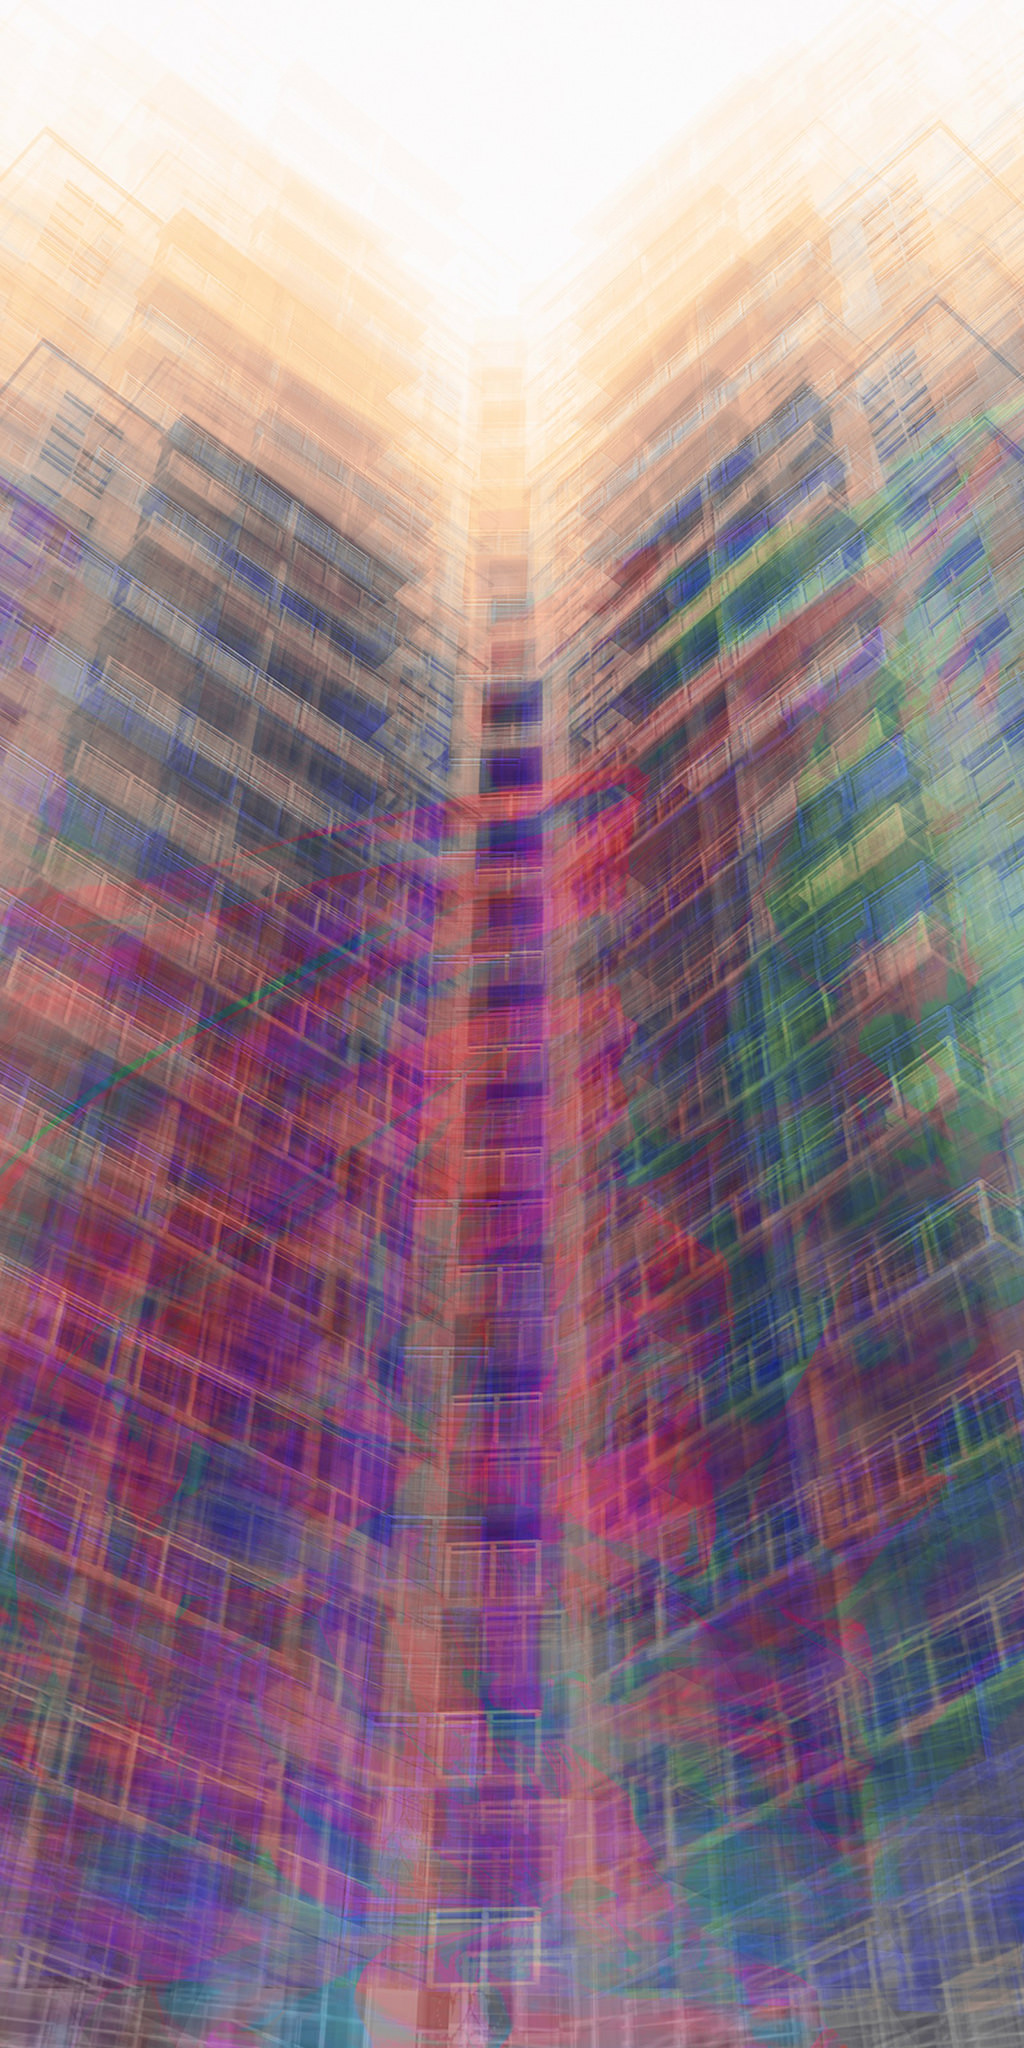 Abstract architecture art of Hyde Park Apartments